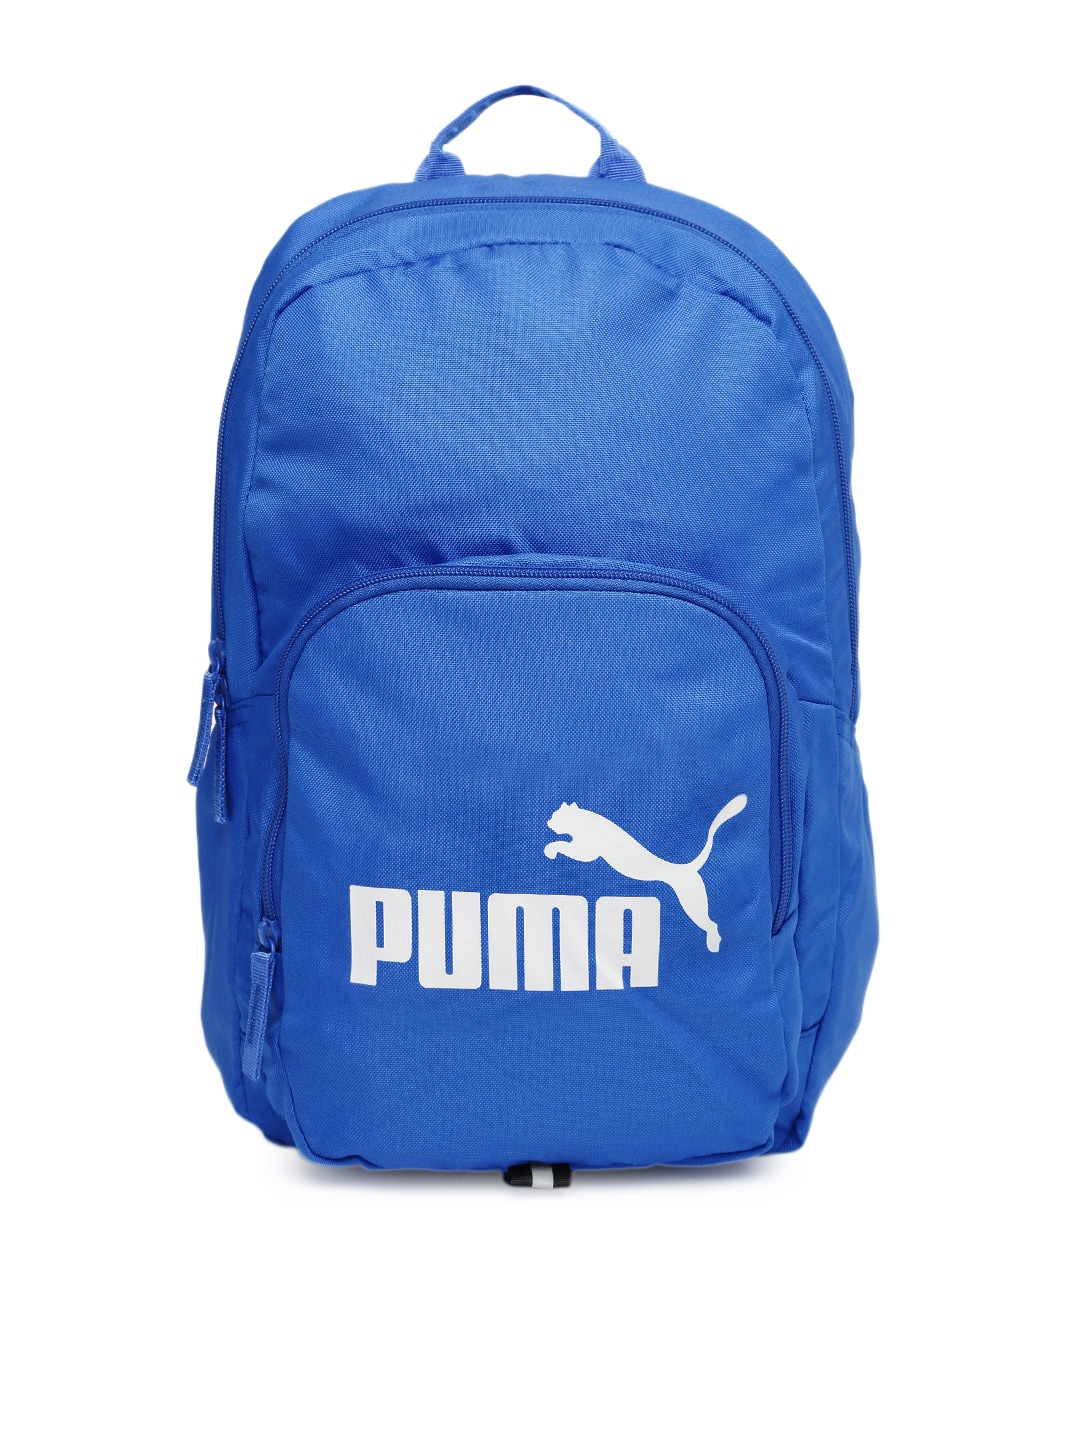 Trolley Laptop Backpack Online India- Fenix Toulouse Handball 166153ca01609